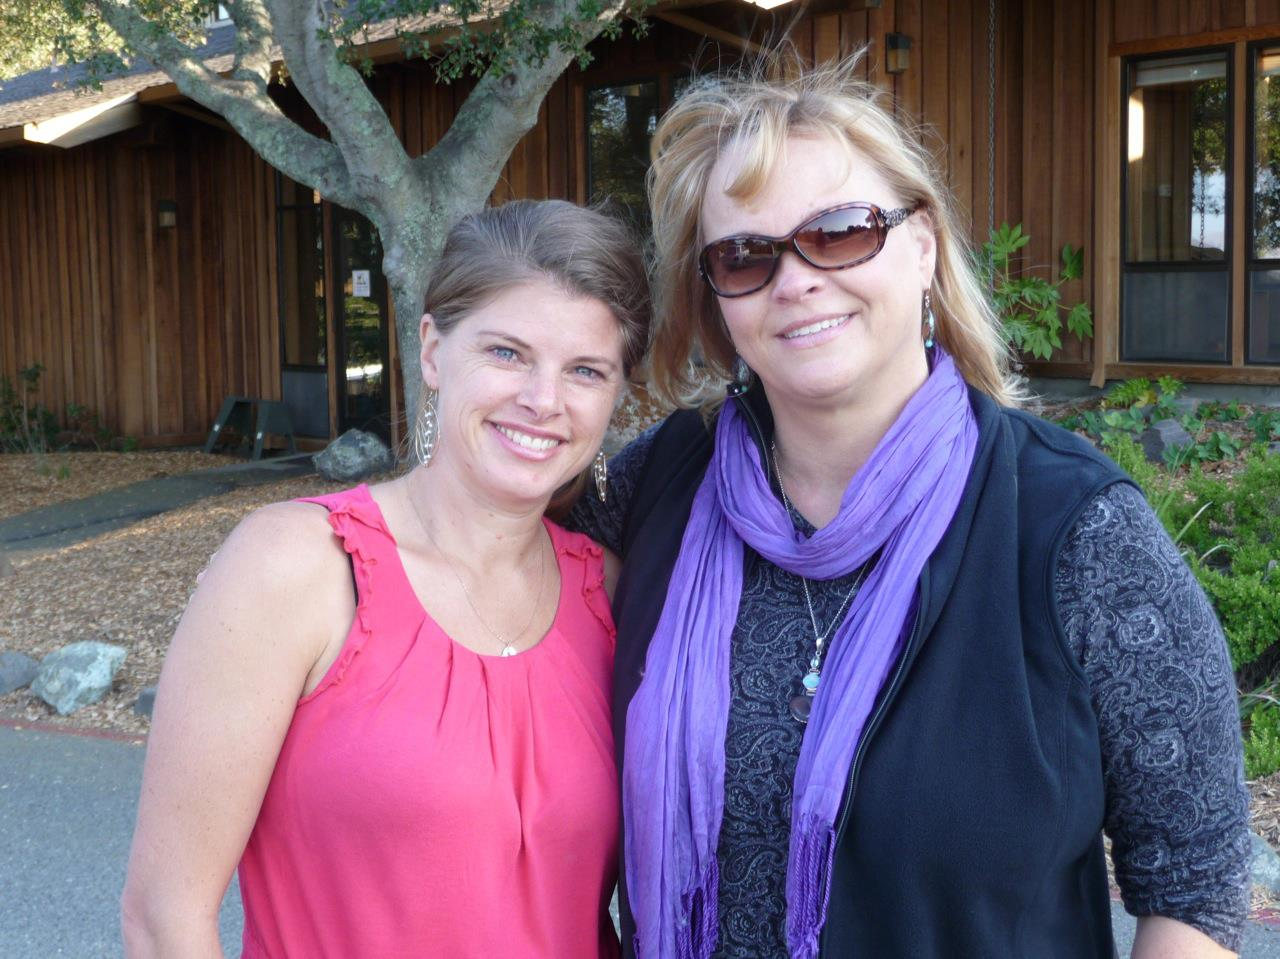 Rhea and Lisa at the Institute of Noetic Sciences in 2012 after completing an interview for the documentary film Love Bomb.